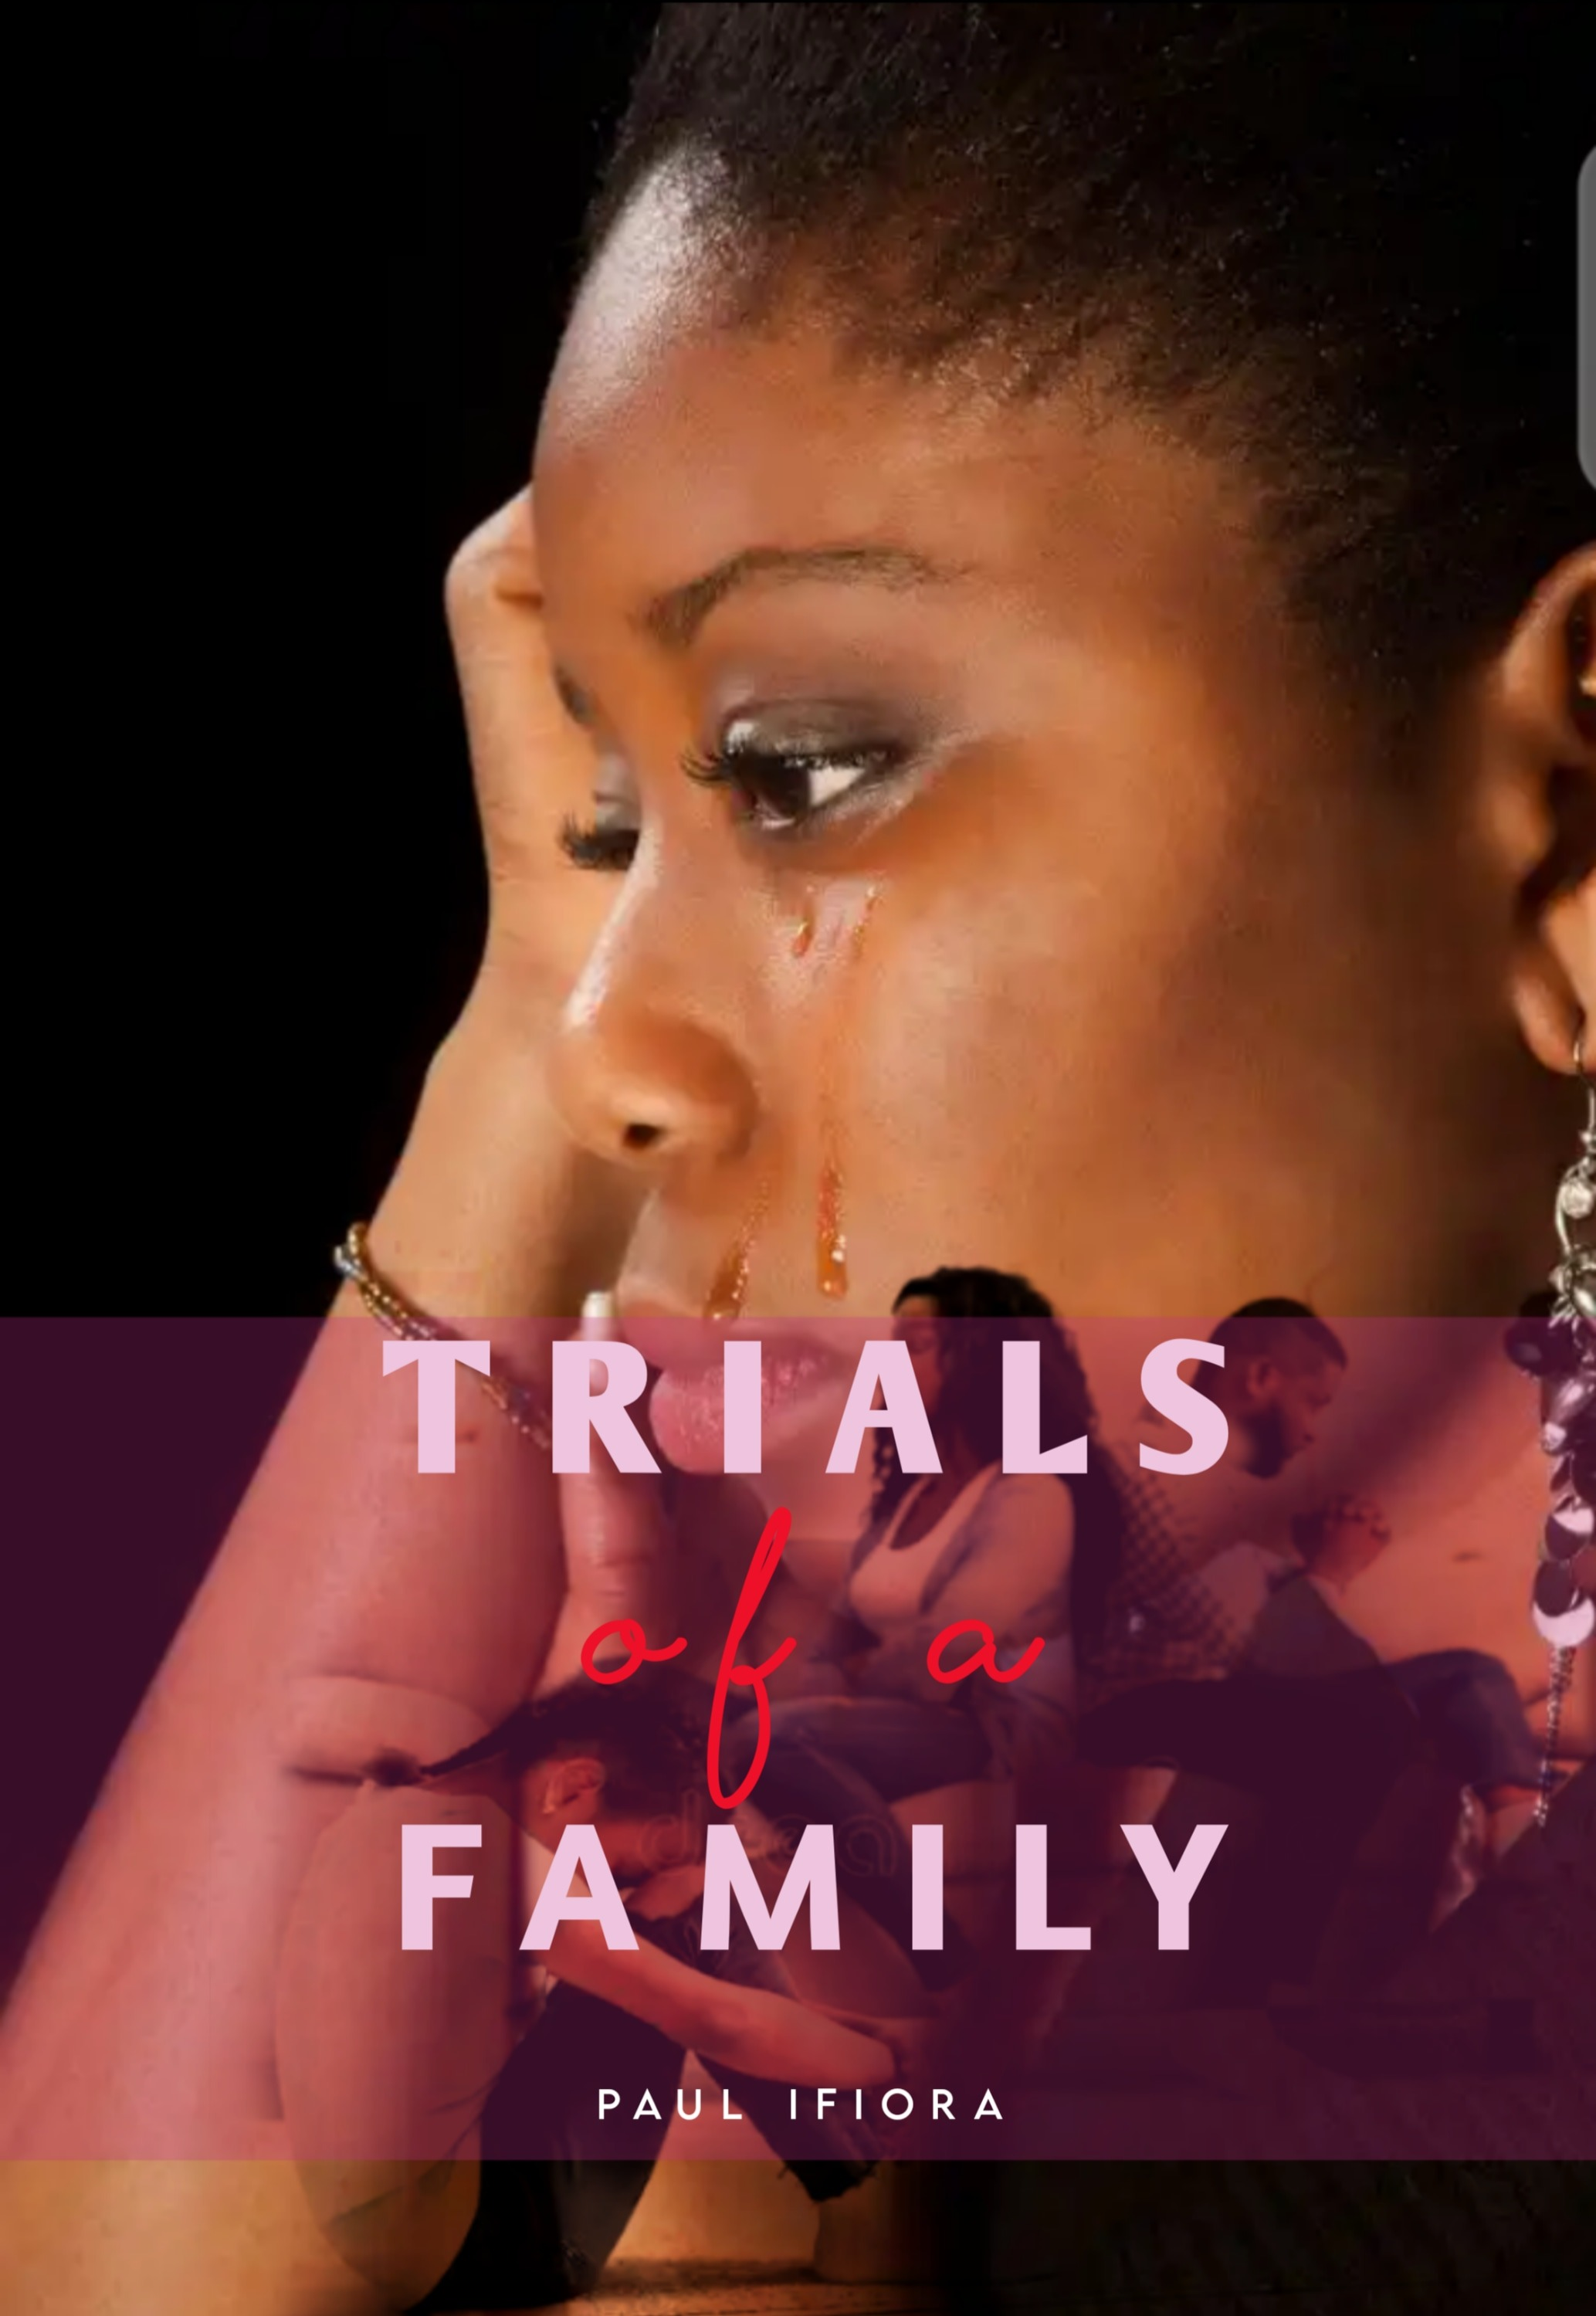 Trials of a Family